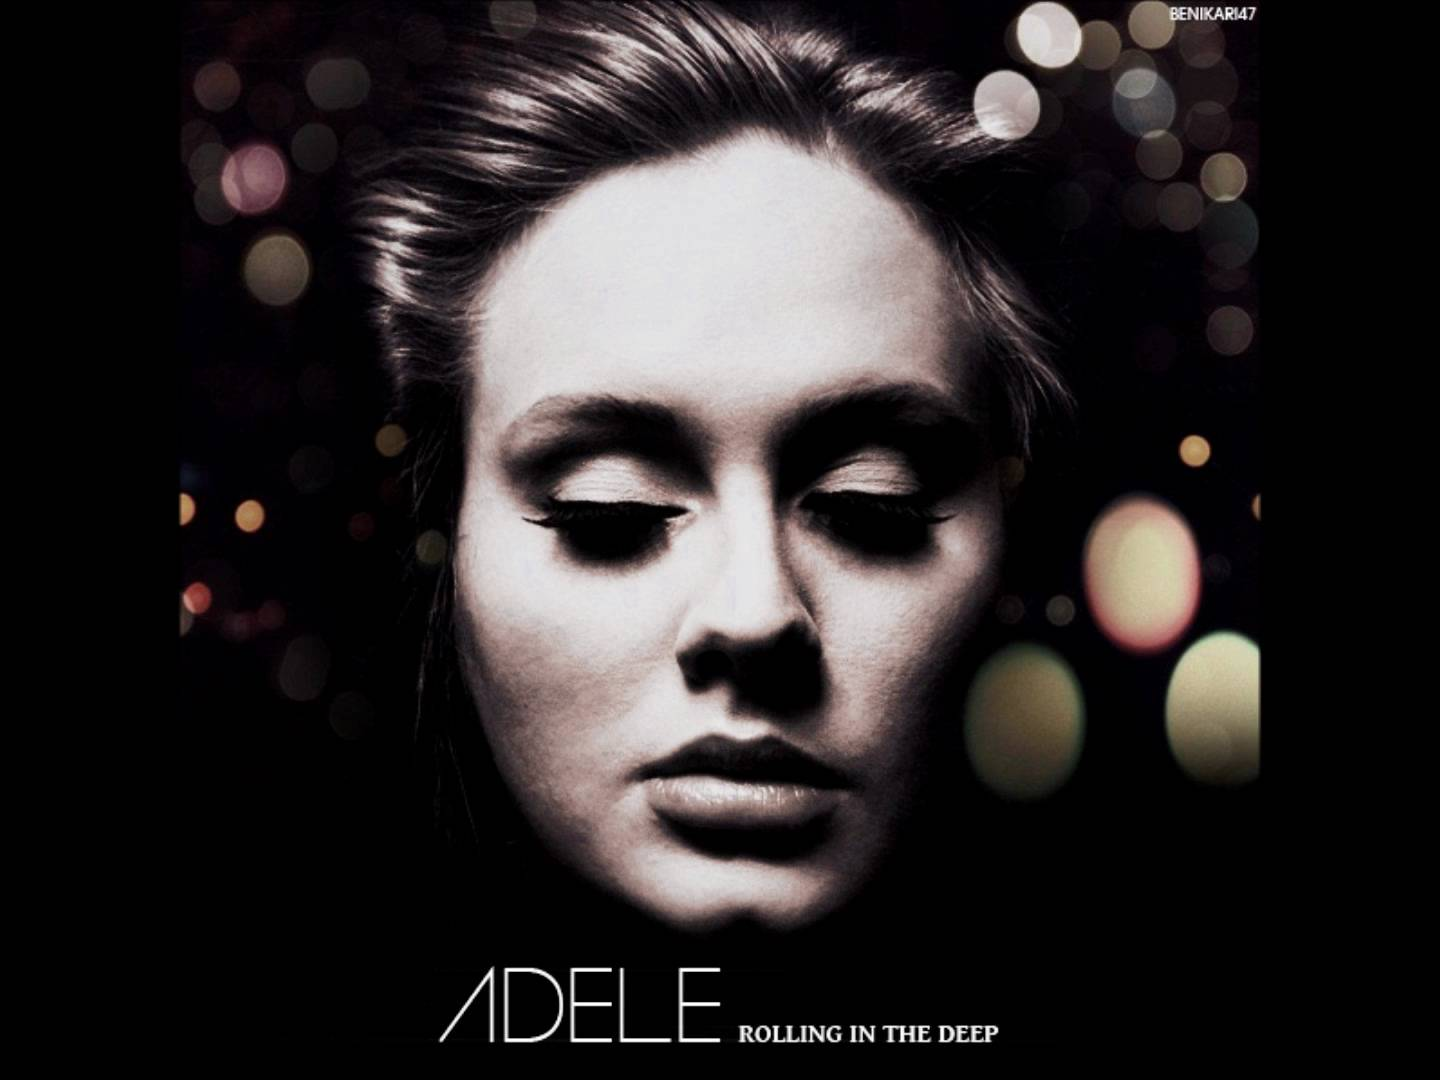 adele rolling in the deep mp3 free download